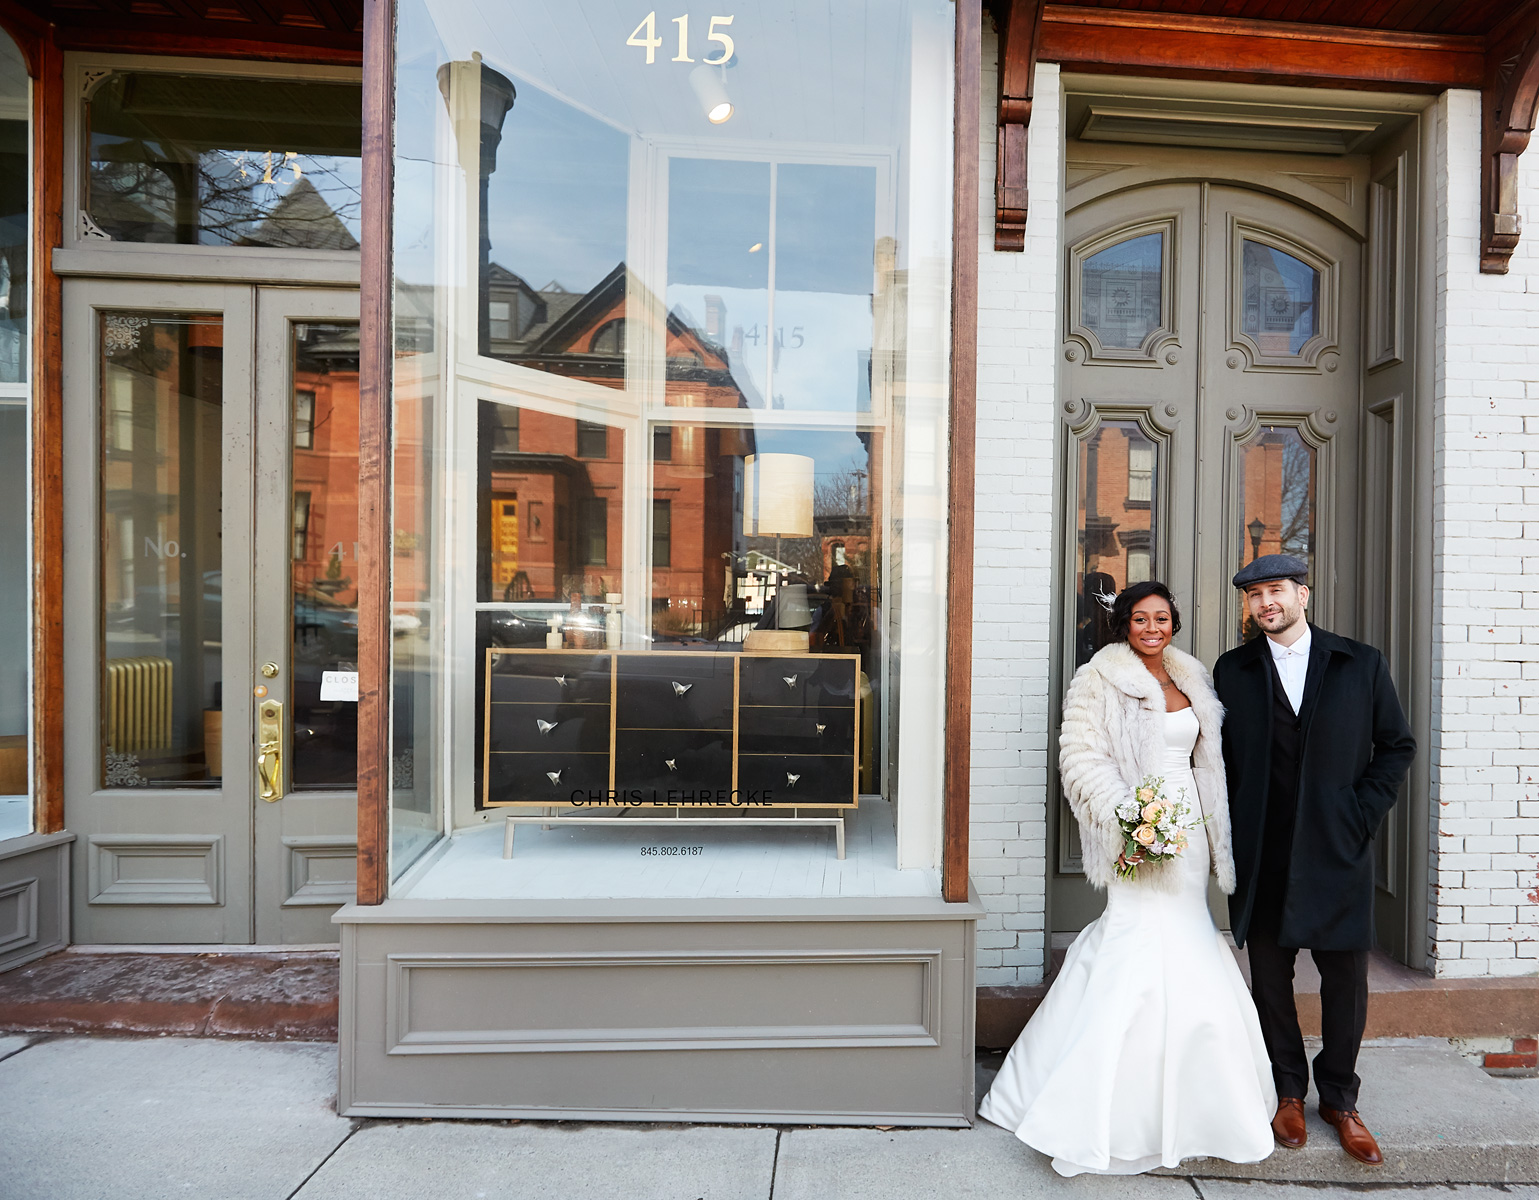 The newlyweds in the doorway of the Hudson Milliner.